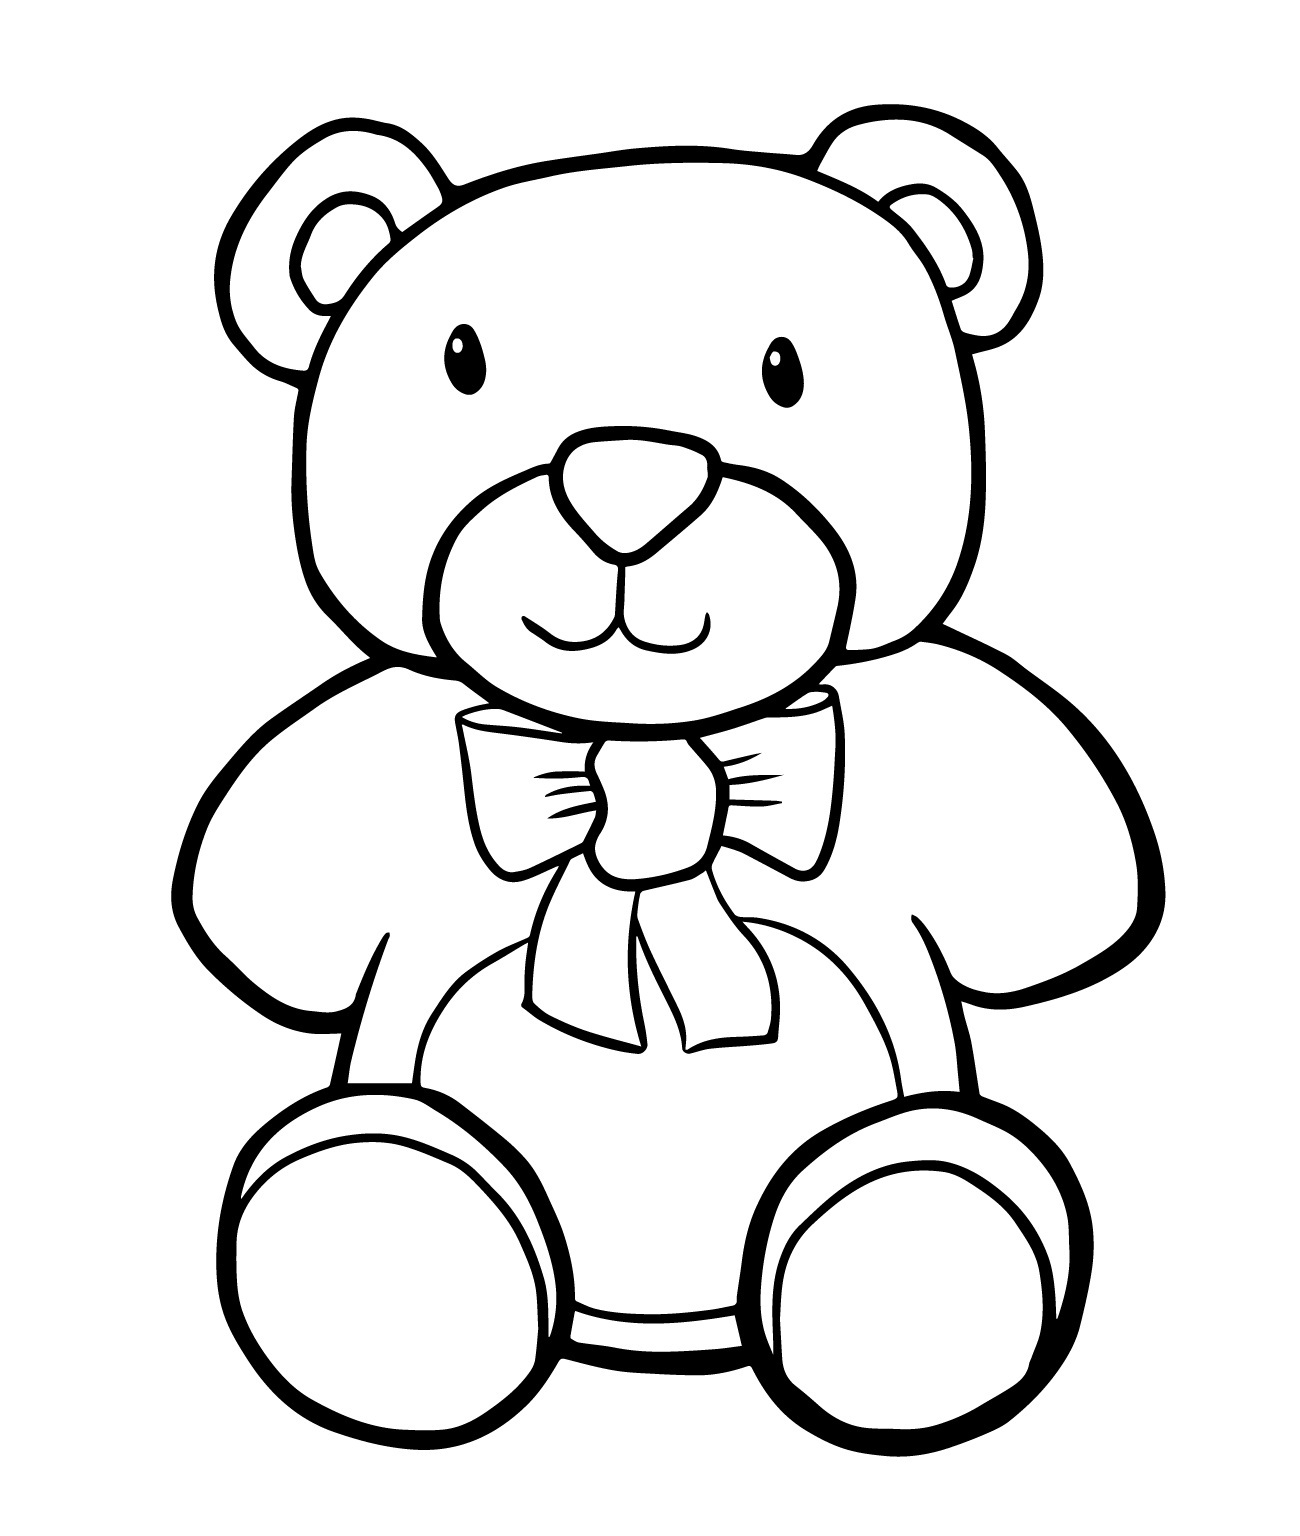 Colouring sheets for lkg - Teddy Bear Coloring Sheets